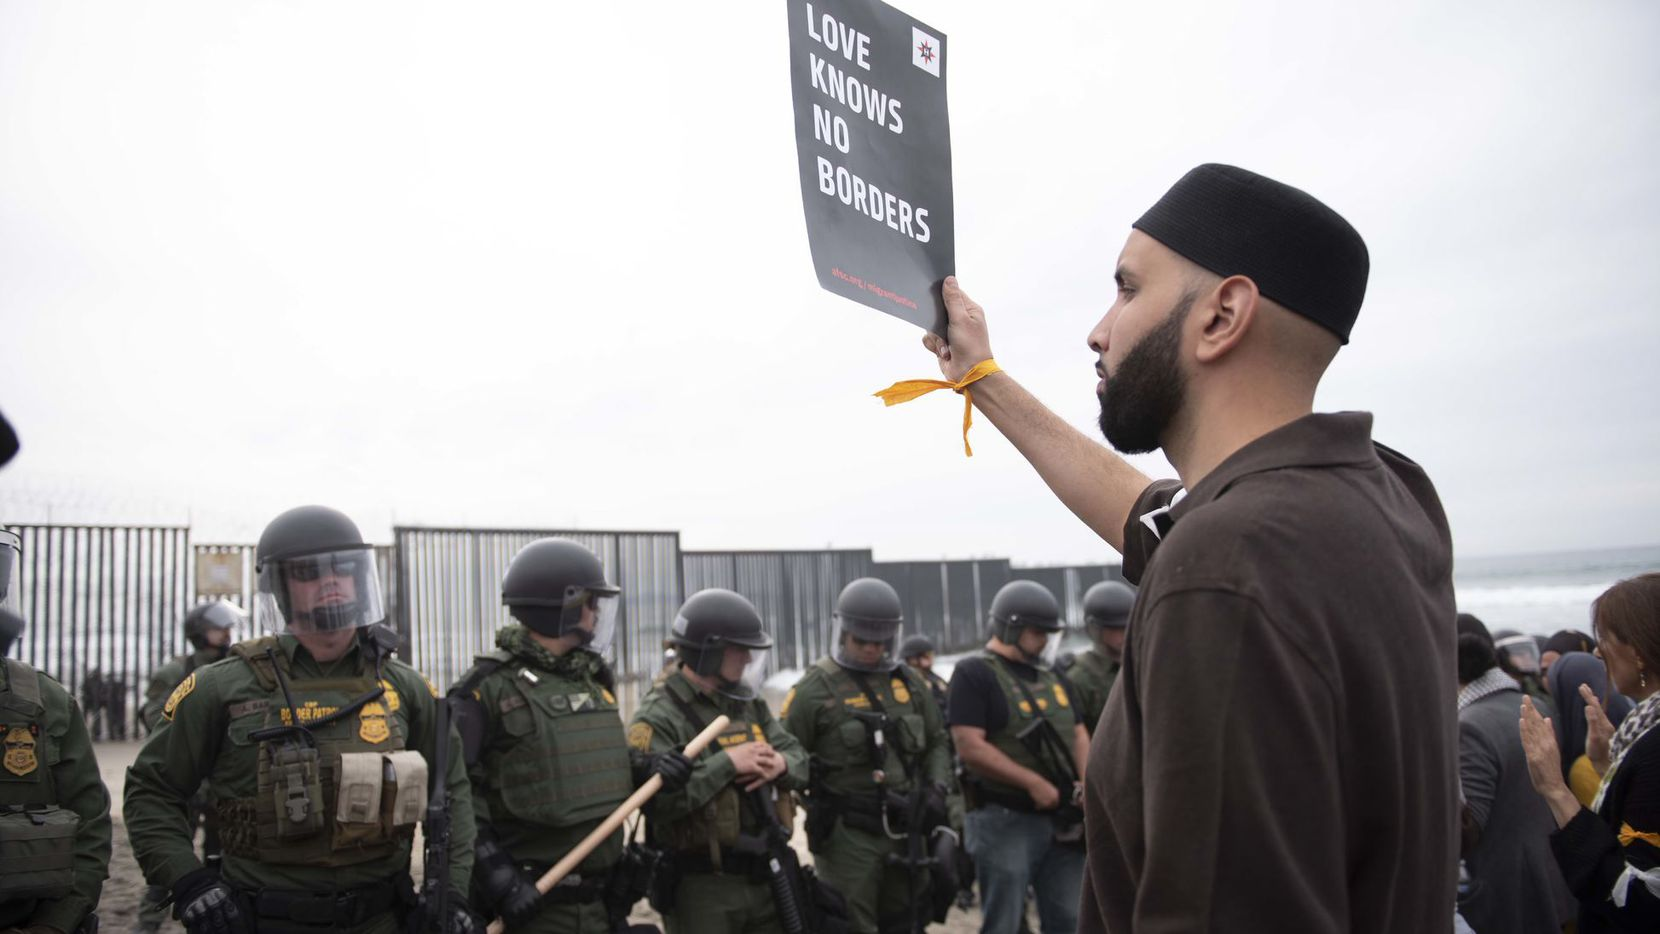 Imam Omar Suleiman protests U.S. immigration policies with a group of demonstrators at the border between San Diego, Calif.,  and Tijuana, Mexico.